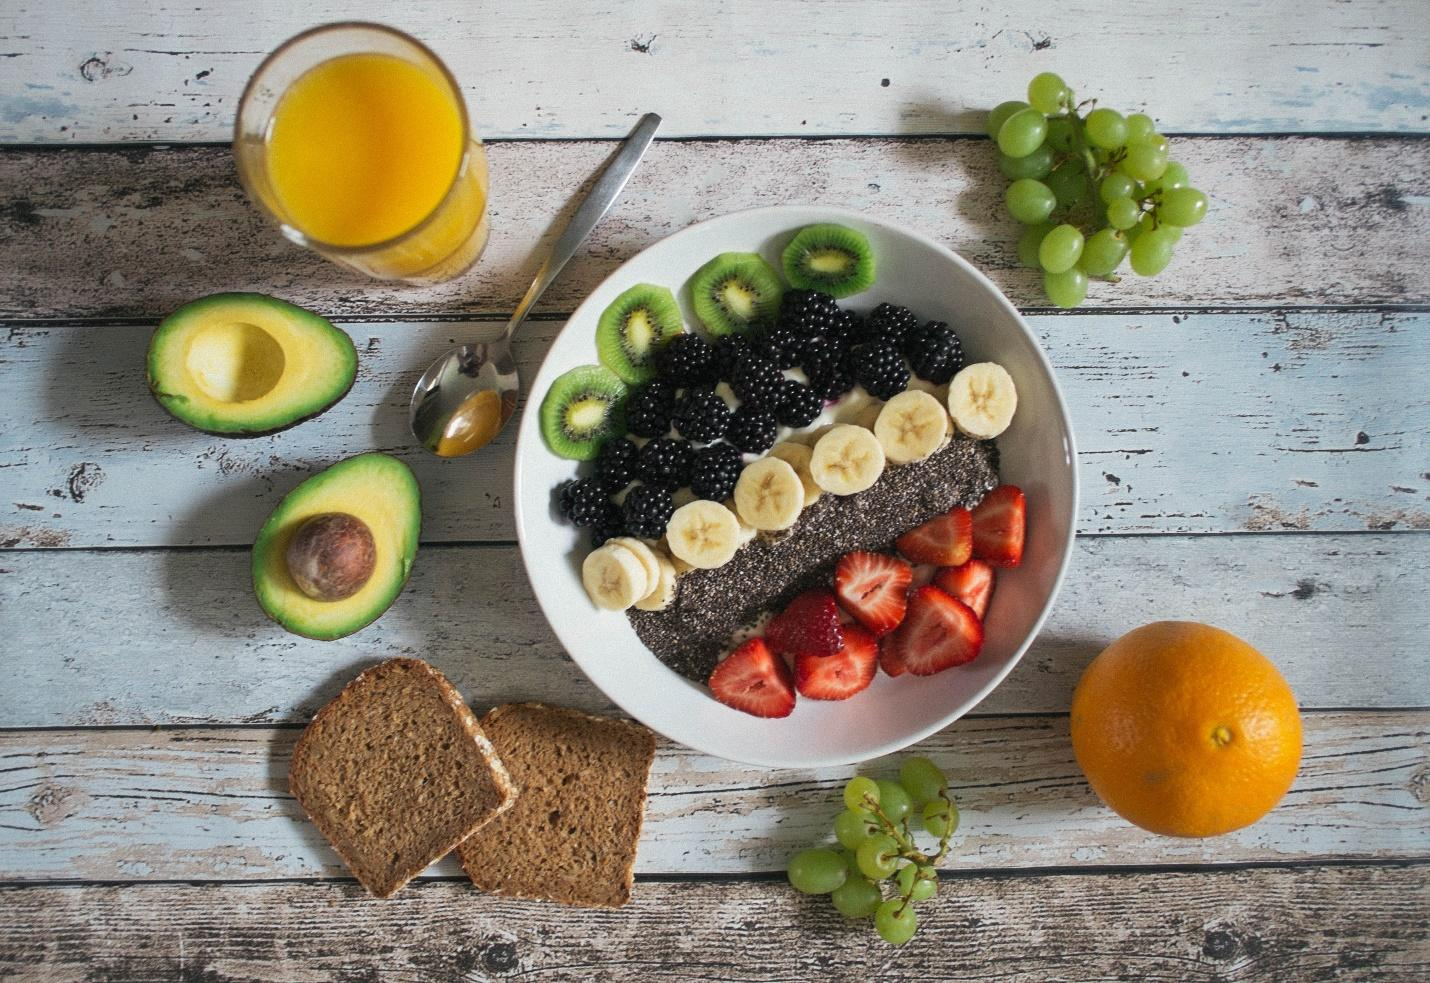 Vegan diet for weight loss - fruits